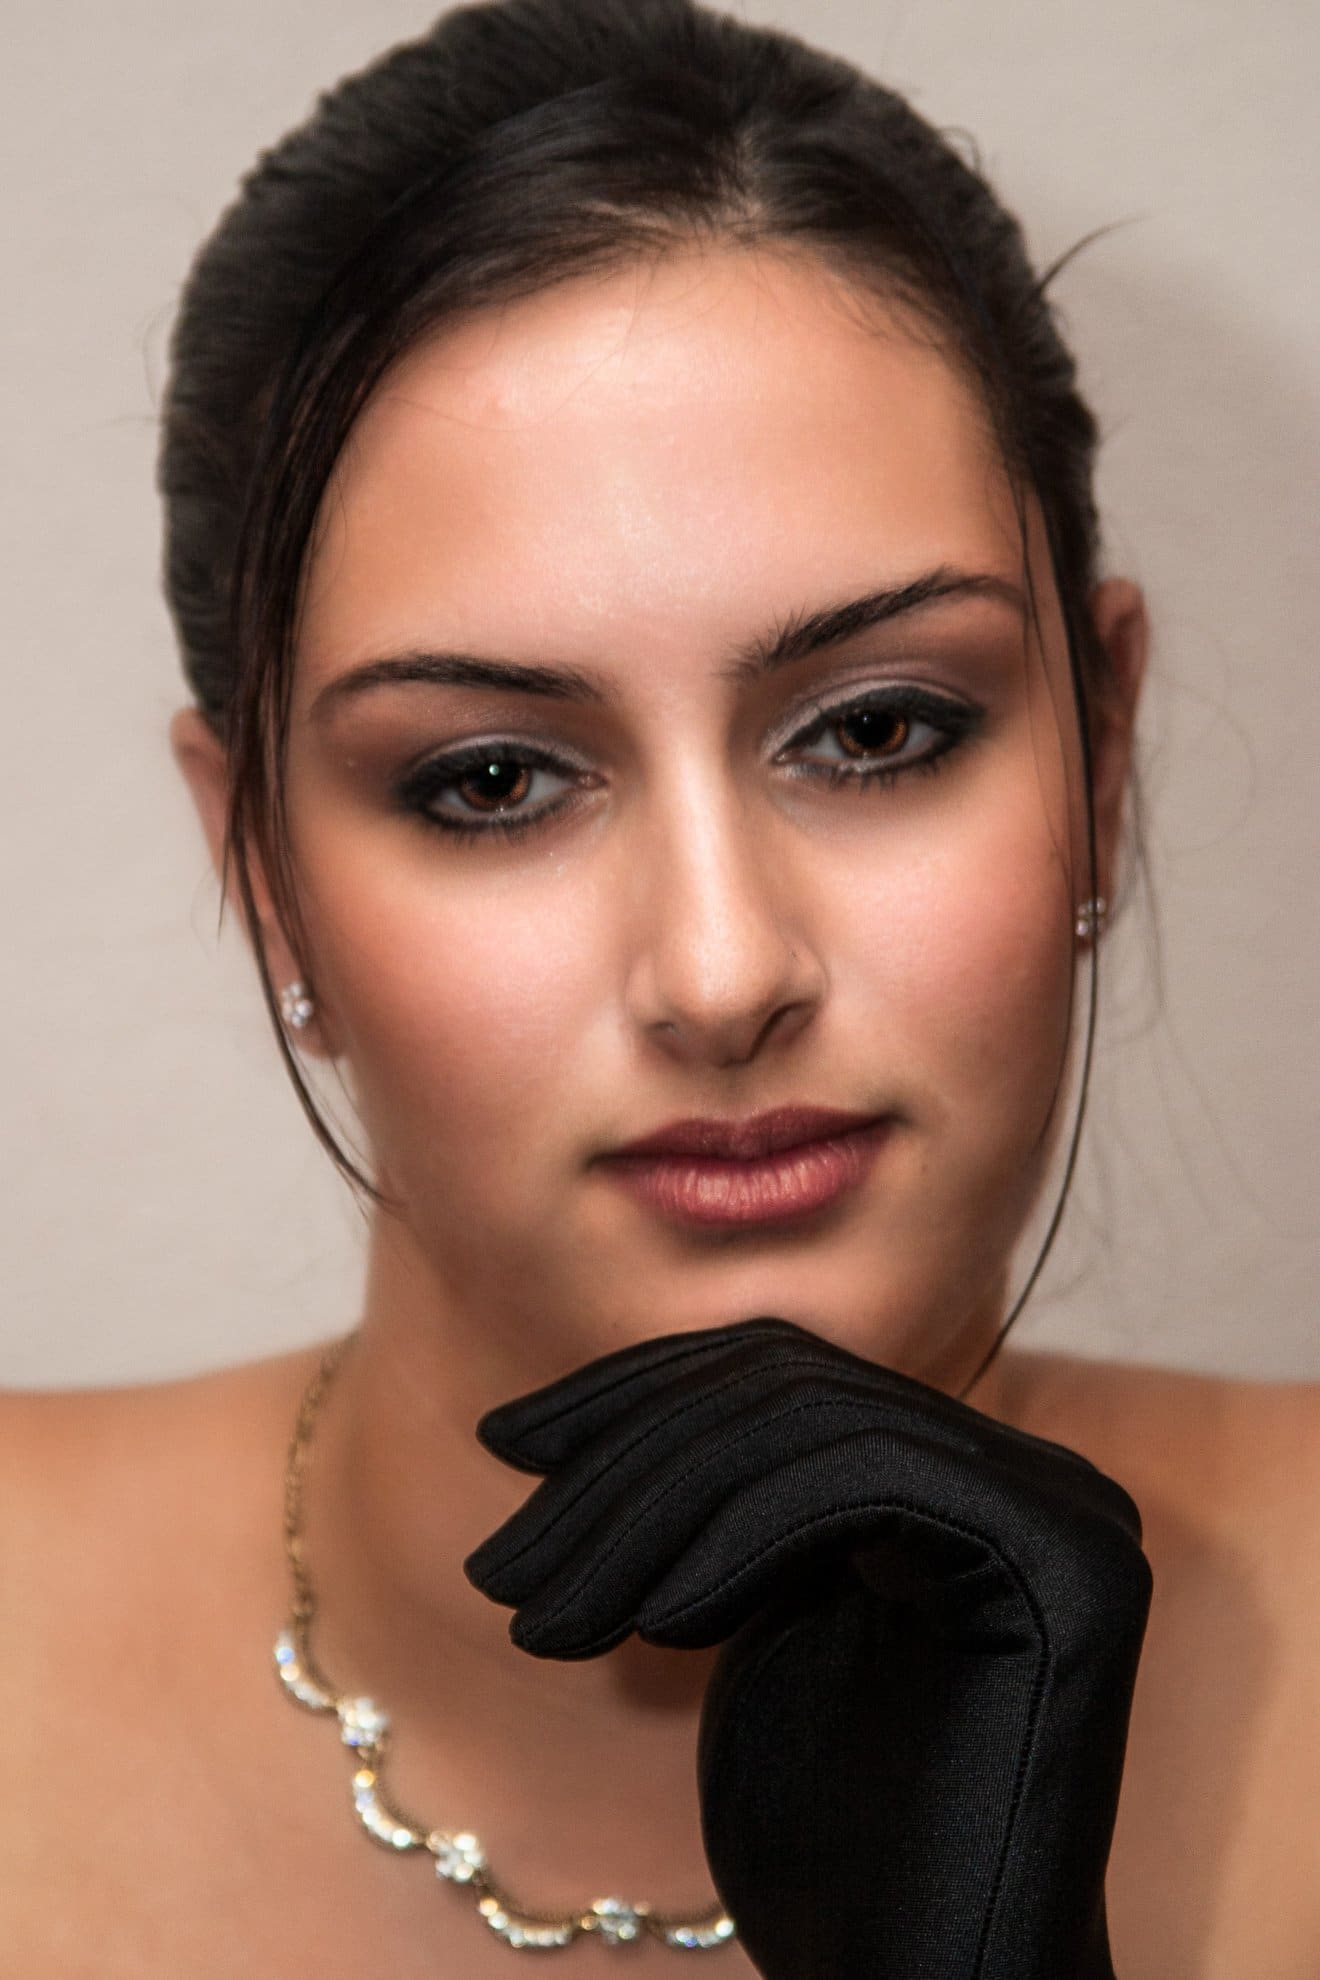 Young Woman Formal Portrait